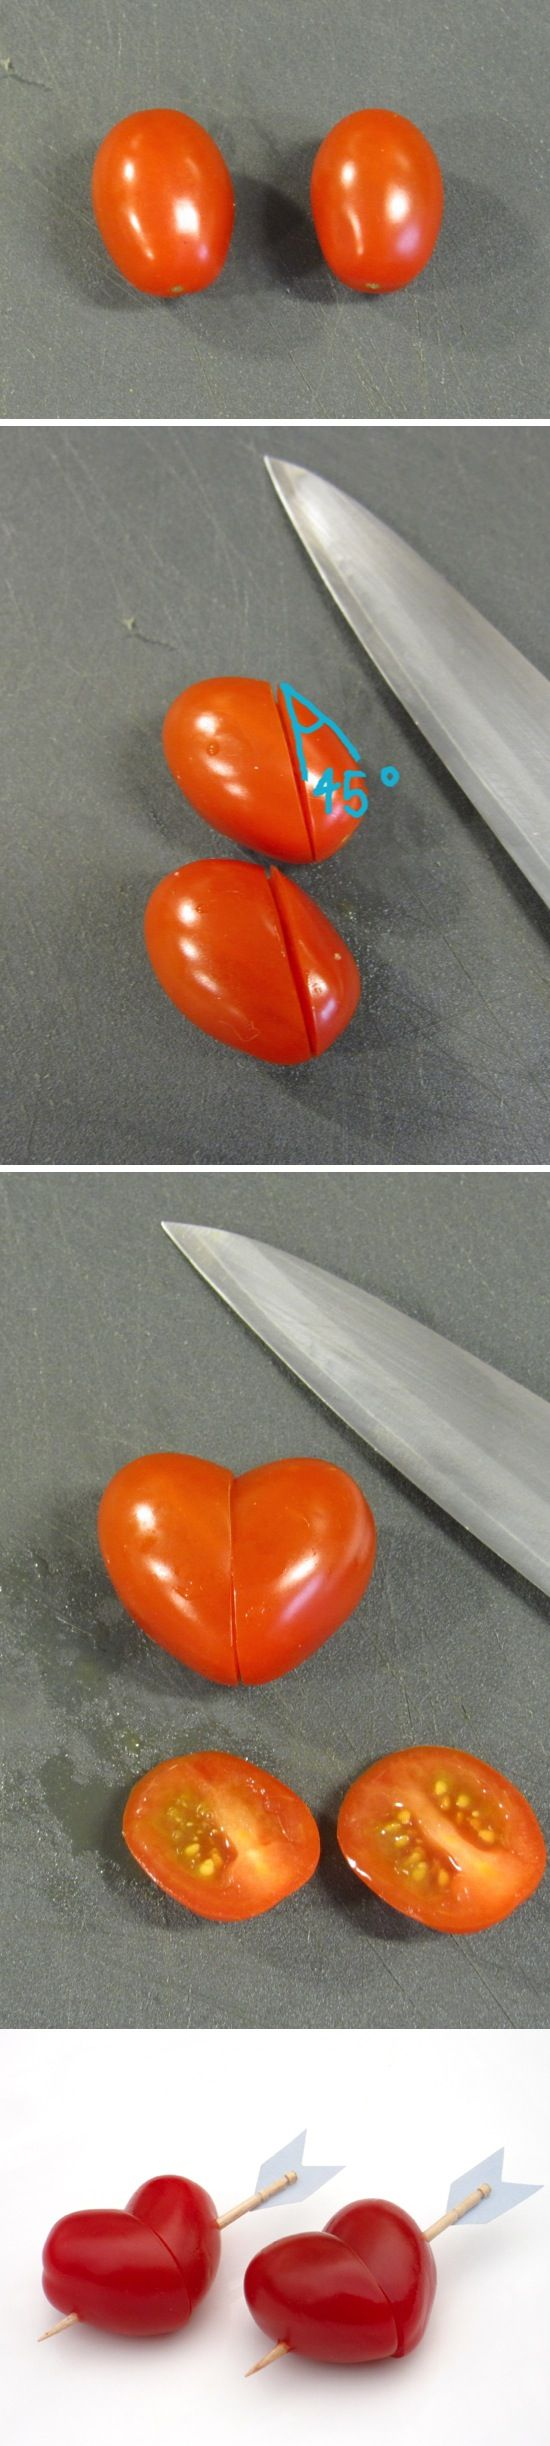 可愛いすぎ! ミニトマトのハート Heart Shaped Cherry Tomatoes by recipebyphoto #Tomatoes #Hearts